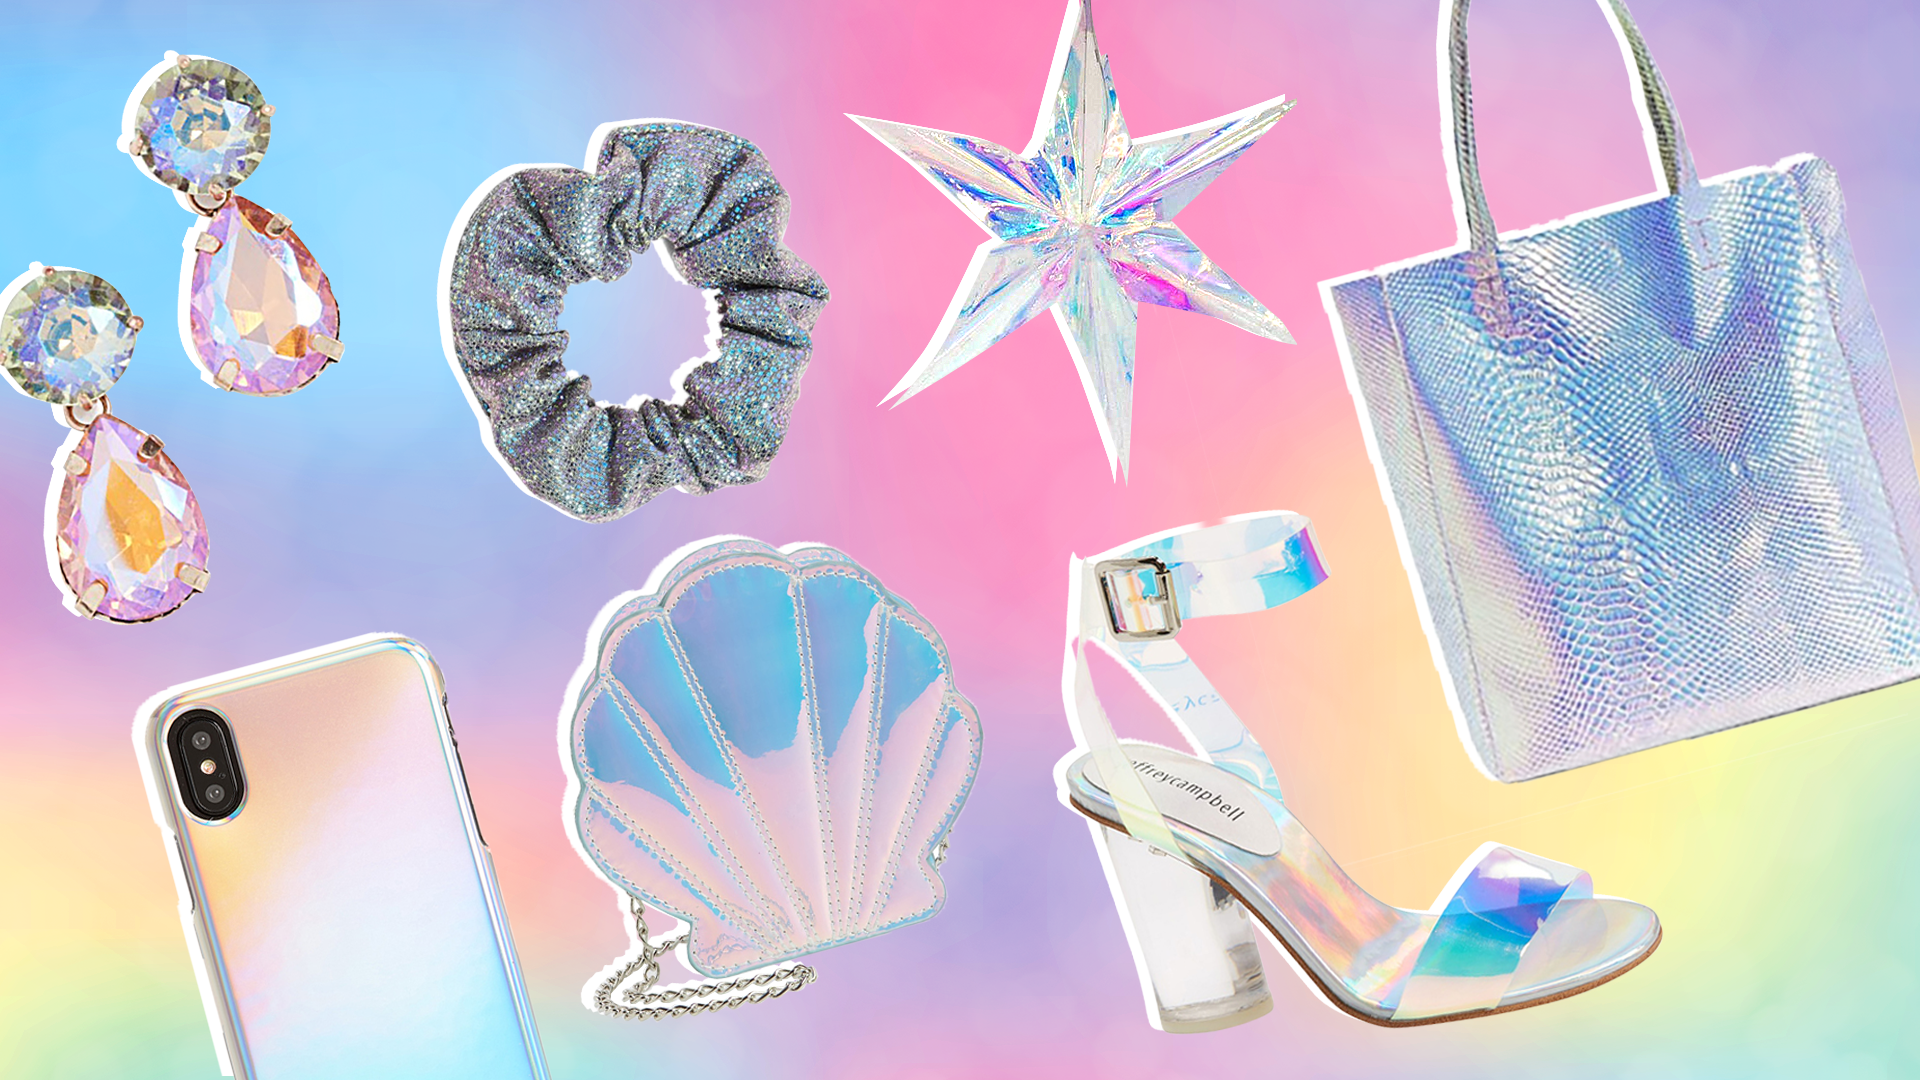 31 Shiny Things That Will Turn Your Life into an Iridescent Dreamscape